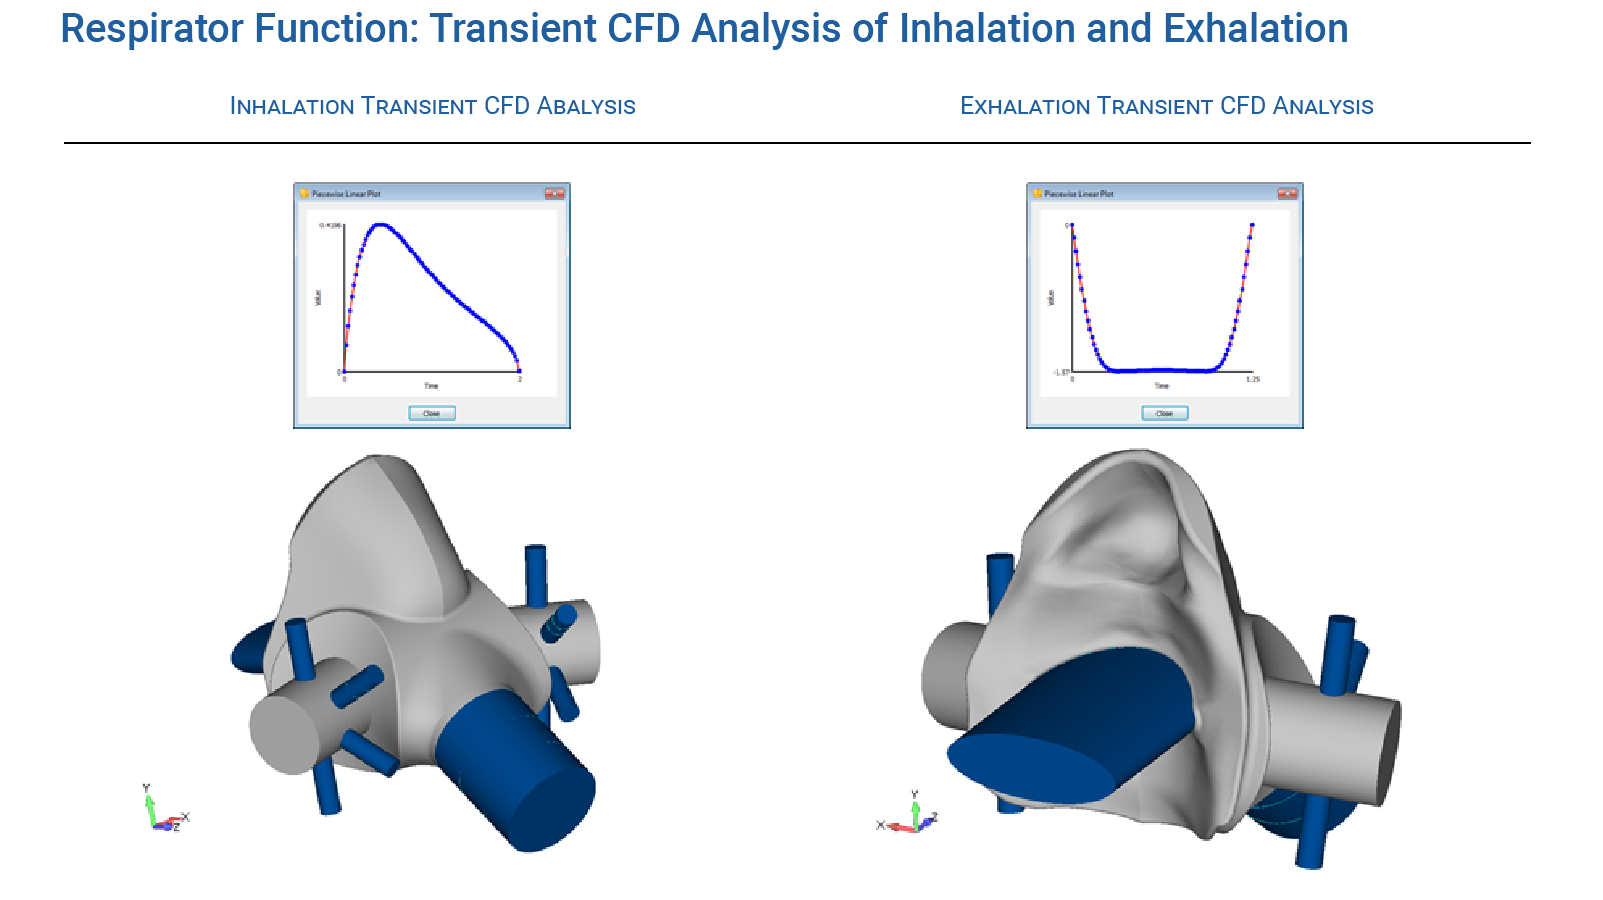 Respirator Functional CFD Analysis -  Transient CFD Simulation of Inhalation and Exhalation - Predictive Engineering CFD Consulting Services